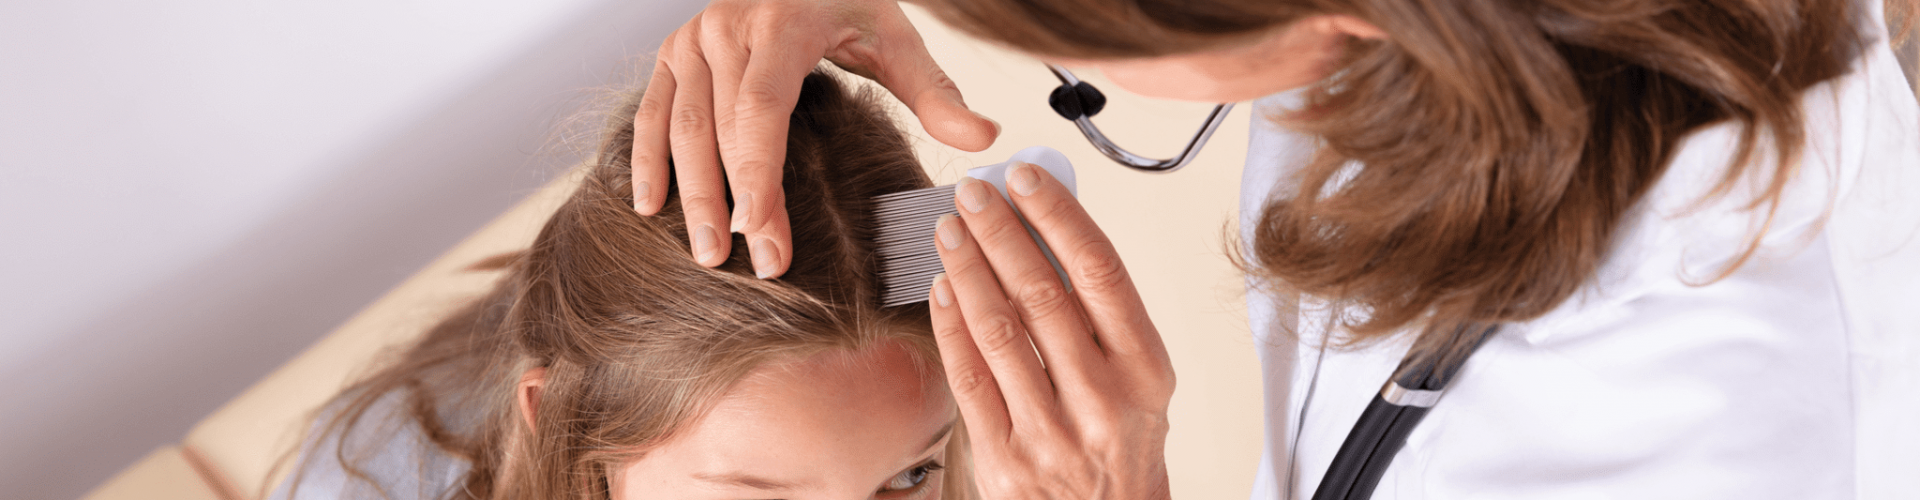 how to use lice comb